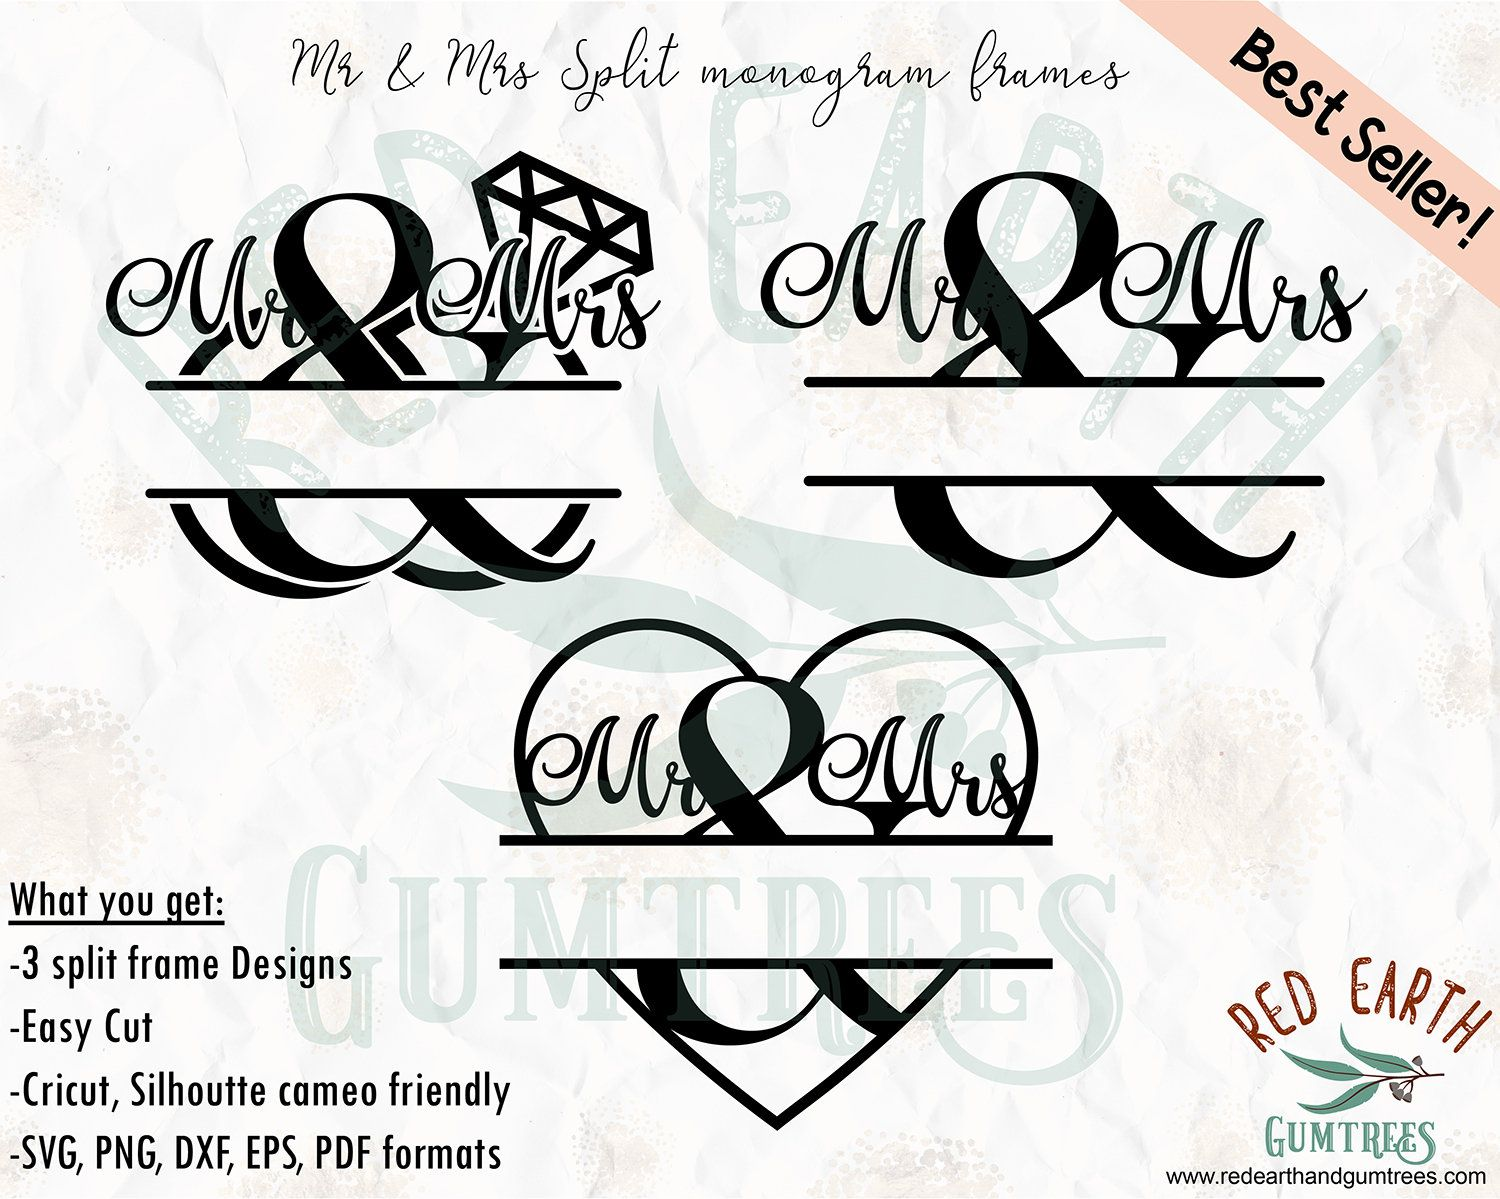 Pin On Cricut Silhouette Cameo Cut Files Svg Dxf Png Eps Pdf